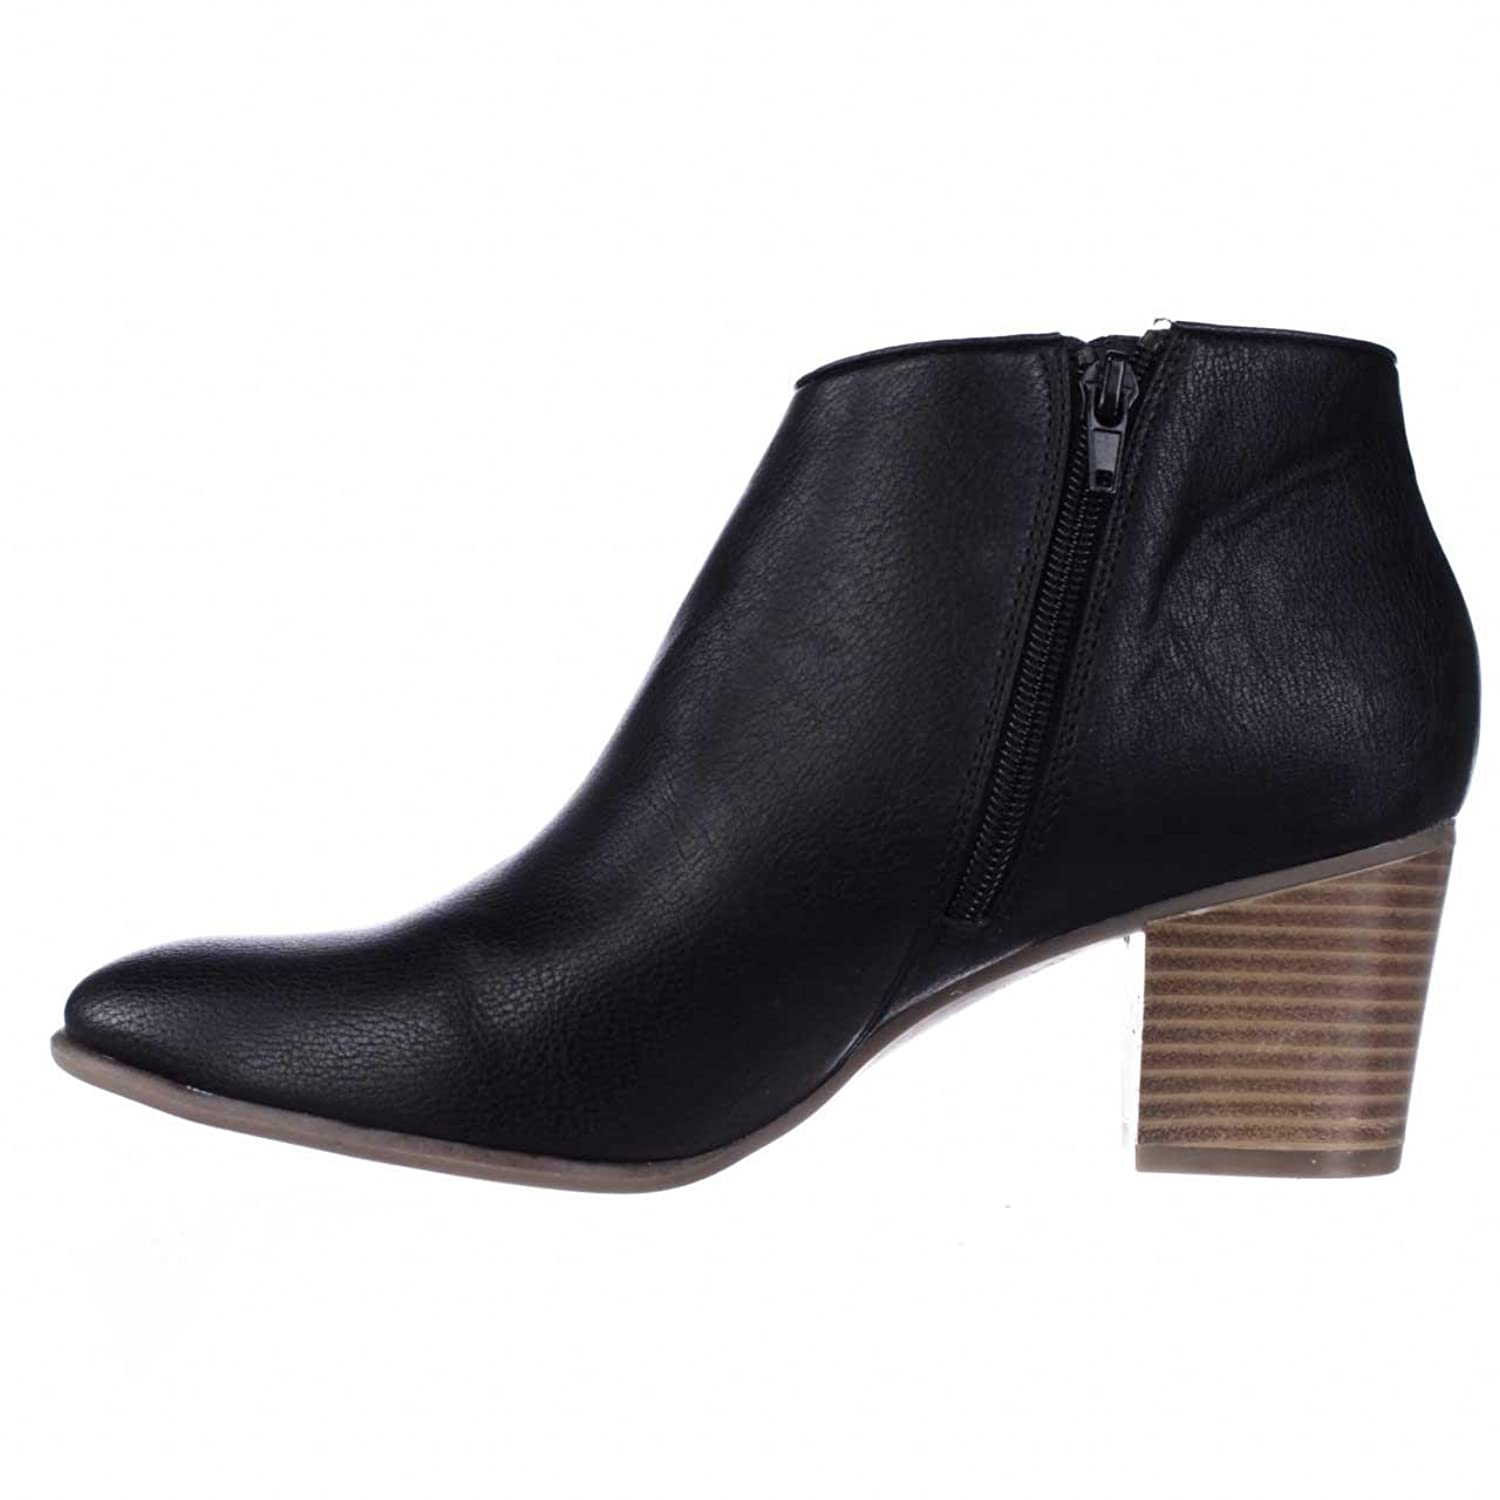 A35 Leoh Casual Ankle Booties - Black